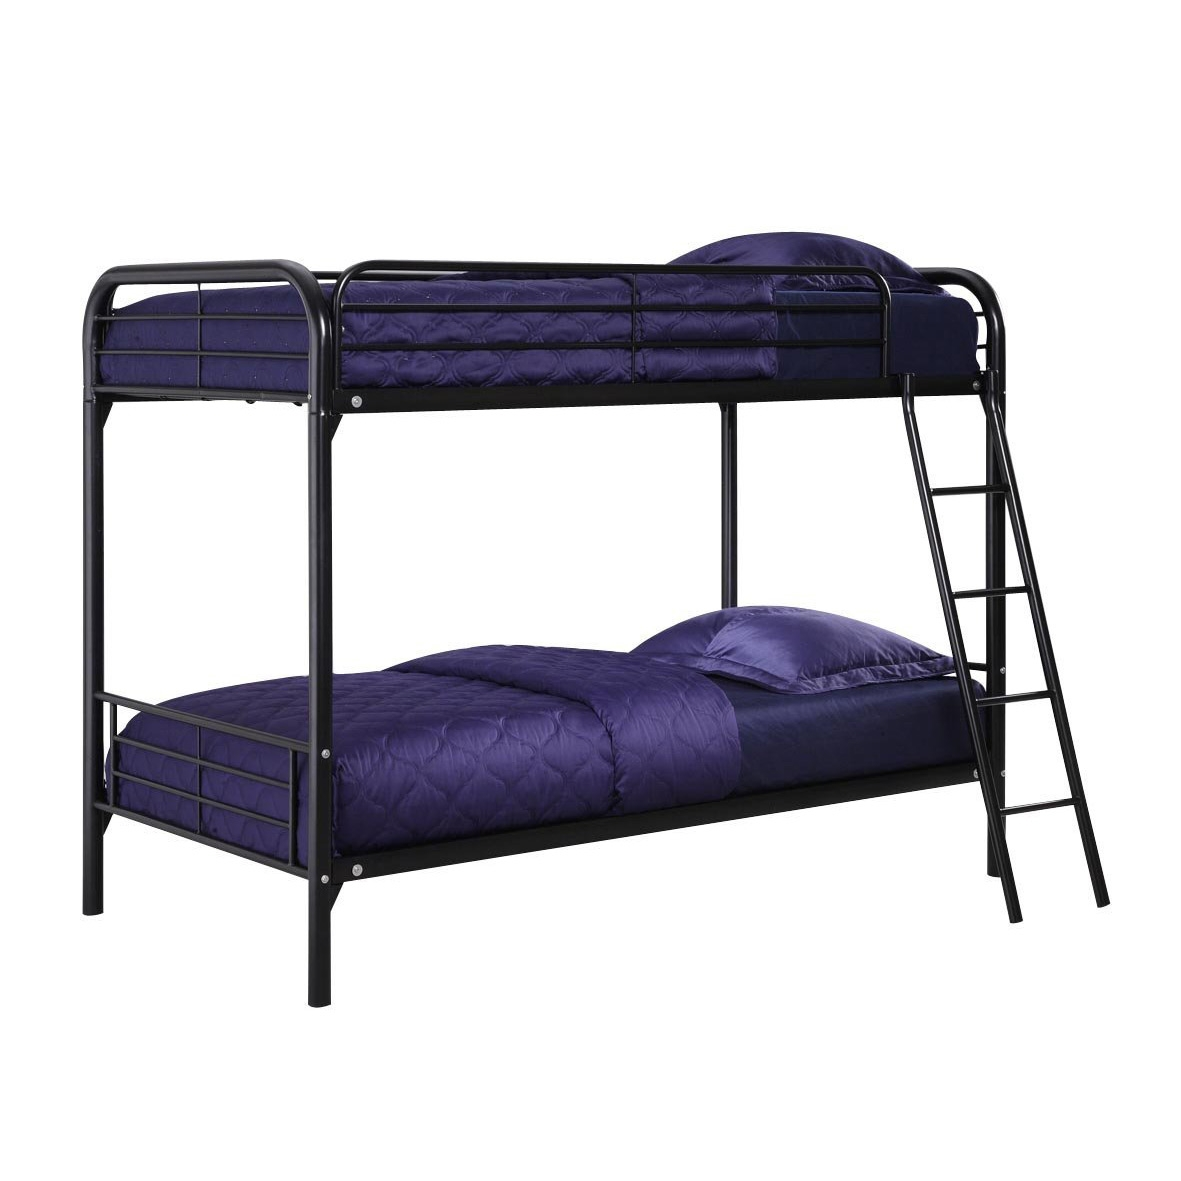 Twin Over Bunk Bed With Ladder In Black Metal